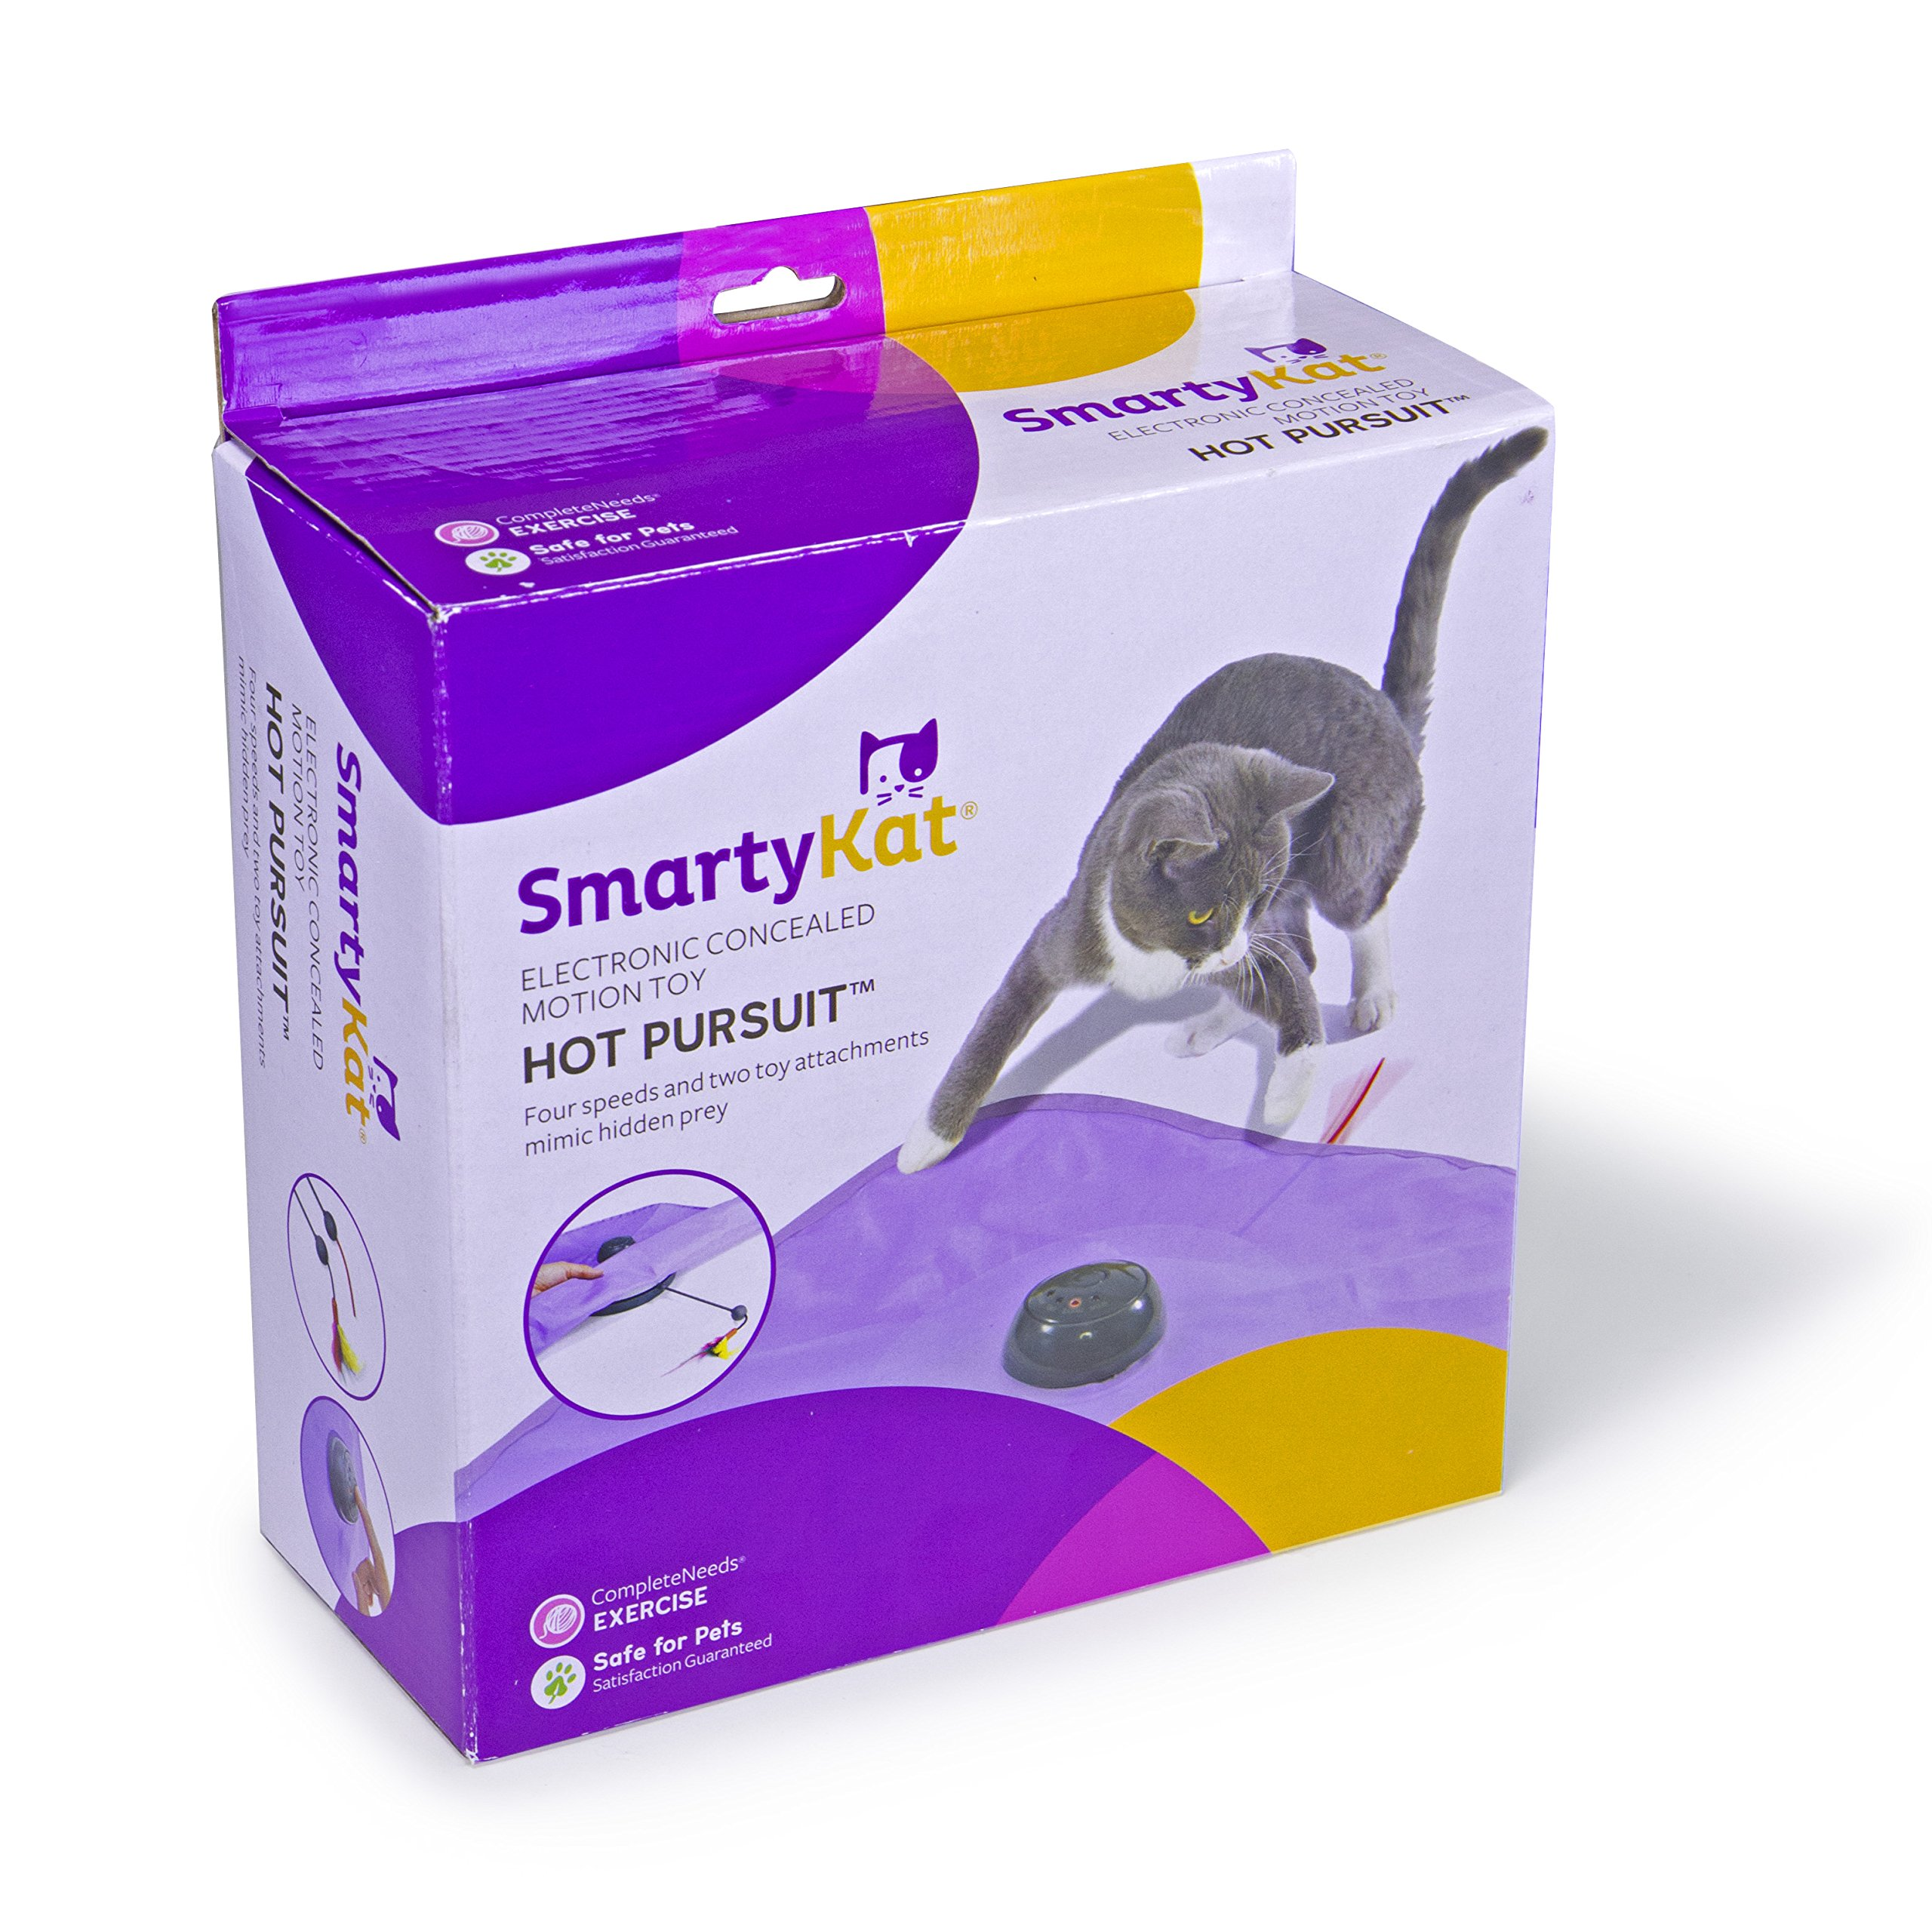 SmartyKat Hot Pursuit Cat Toy Concealed Motion Toy